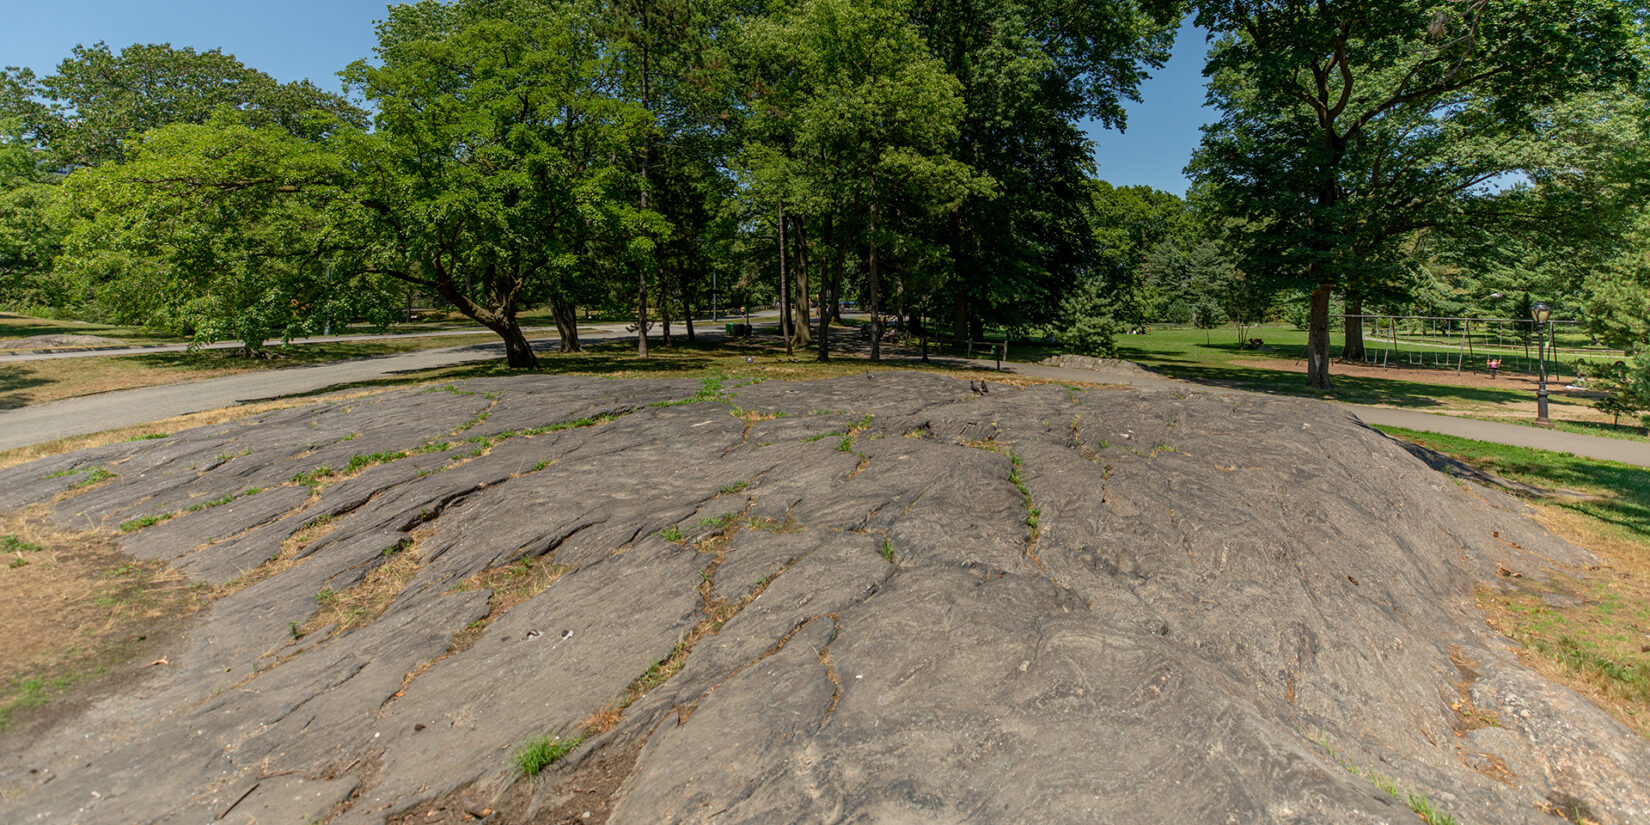 A view of some of Manhattan's original rocks, bordered at the top by a stand of trees